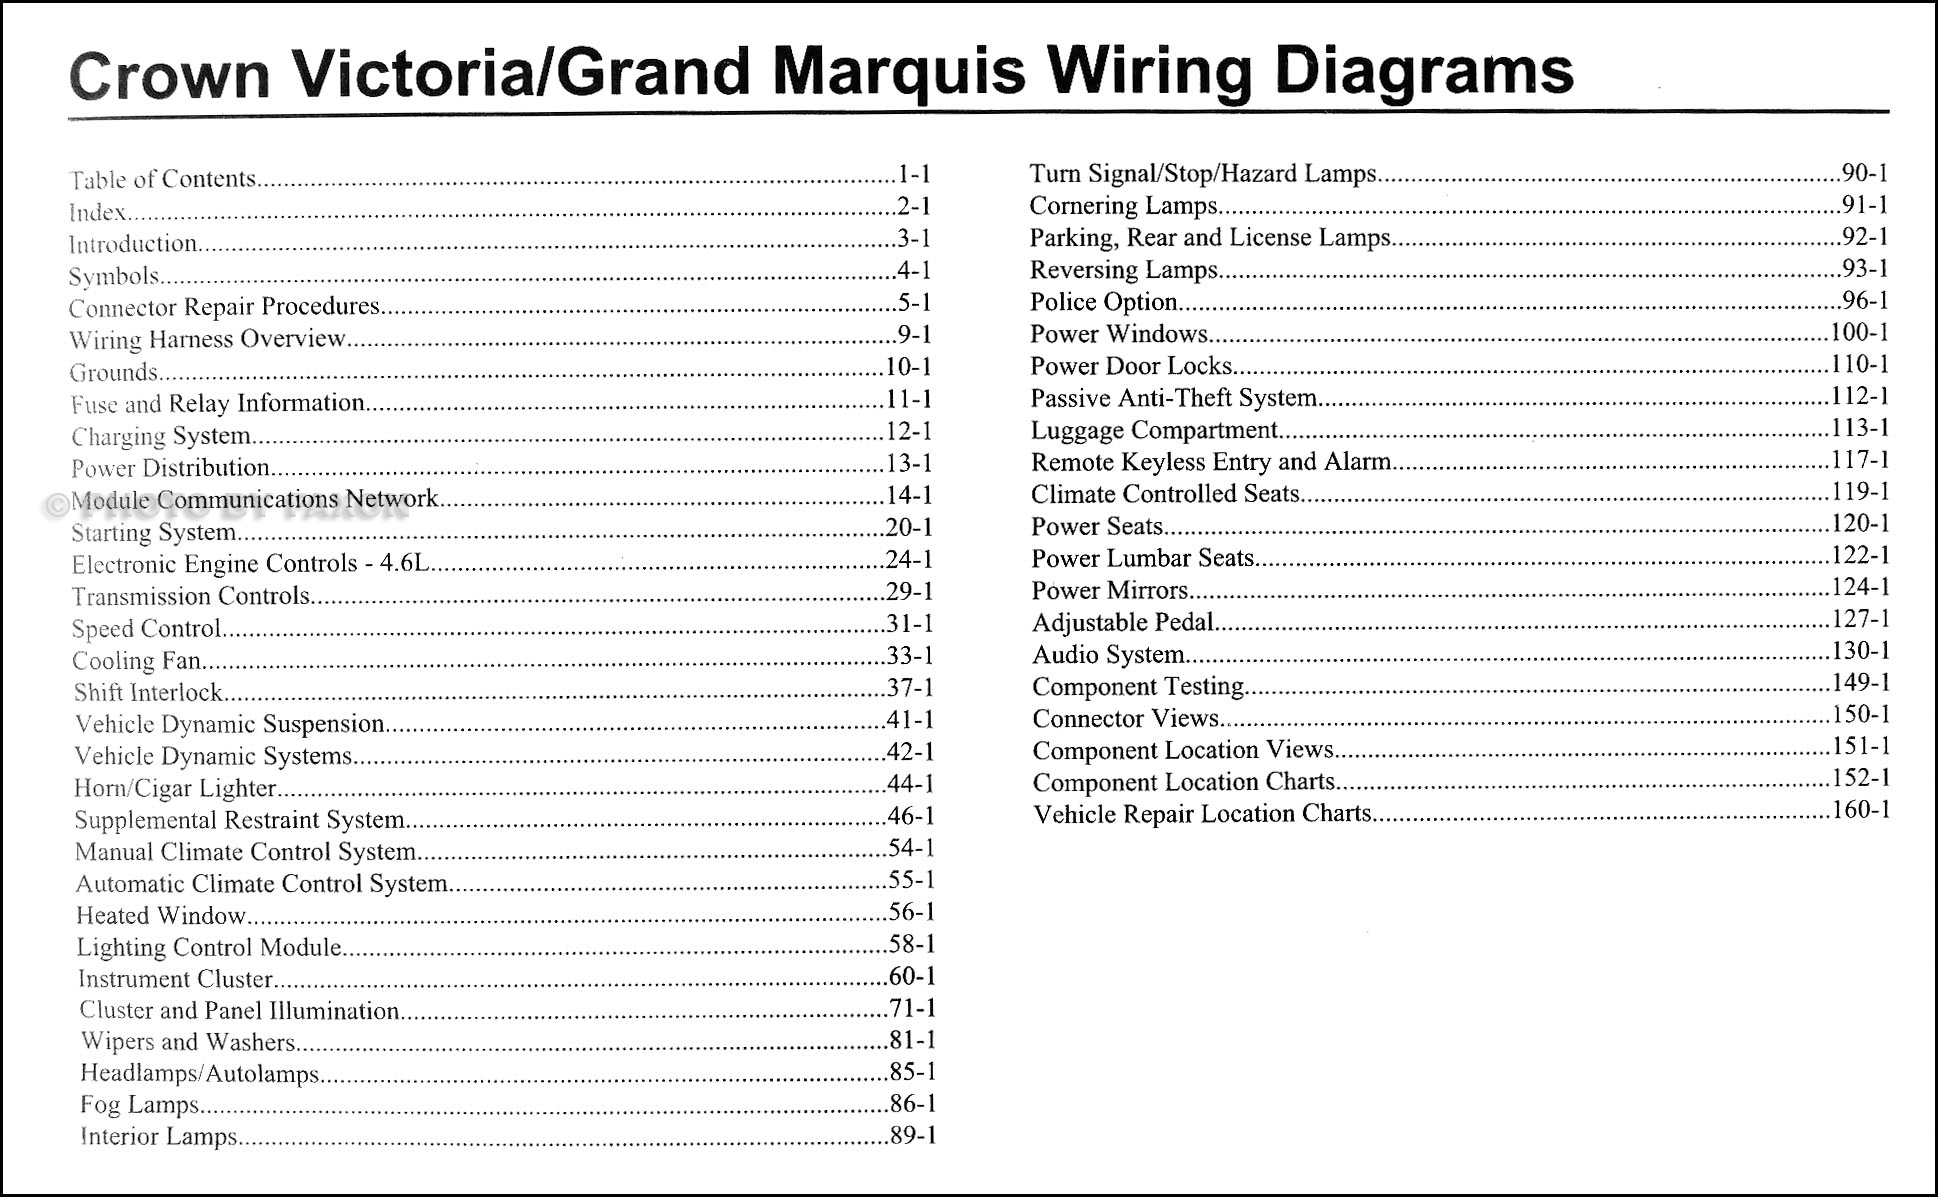 2009FordCrownVictoriaOWD TOC 2009 crown victoria & grand marquis original wiring diagram manual 2001 grand marquis radio wiring diagram at gsmx.co